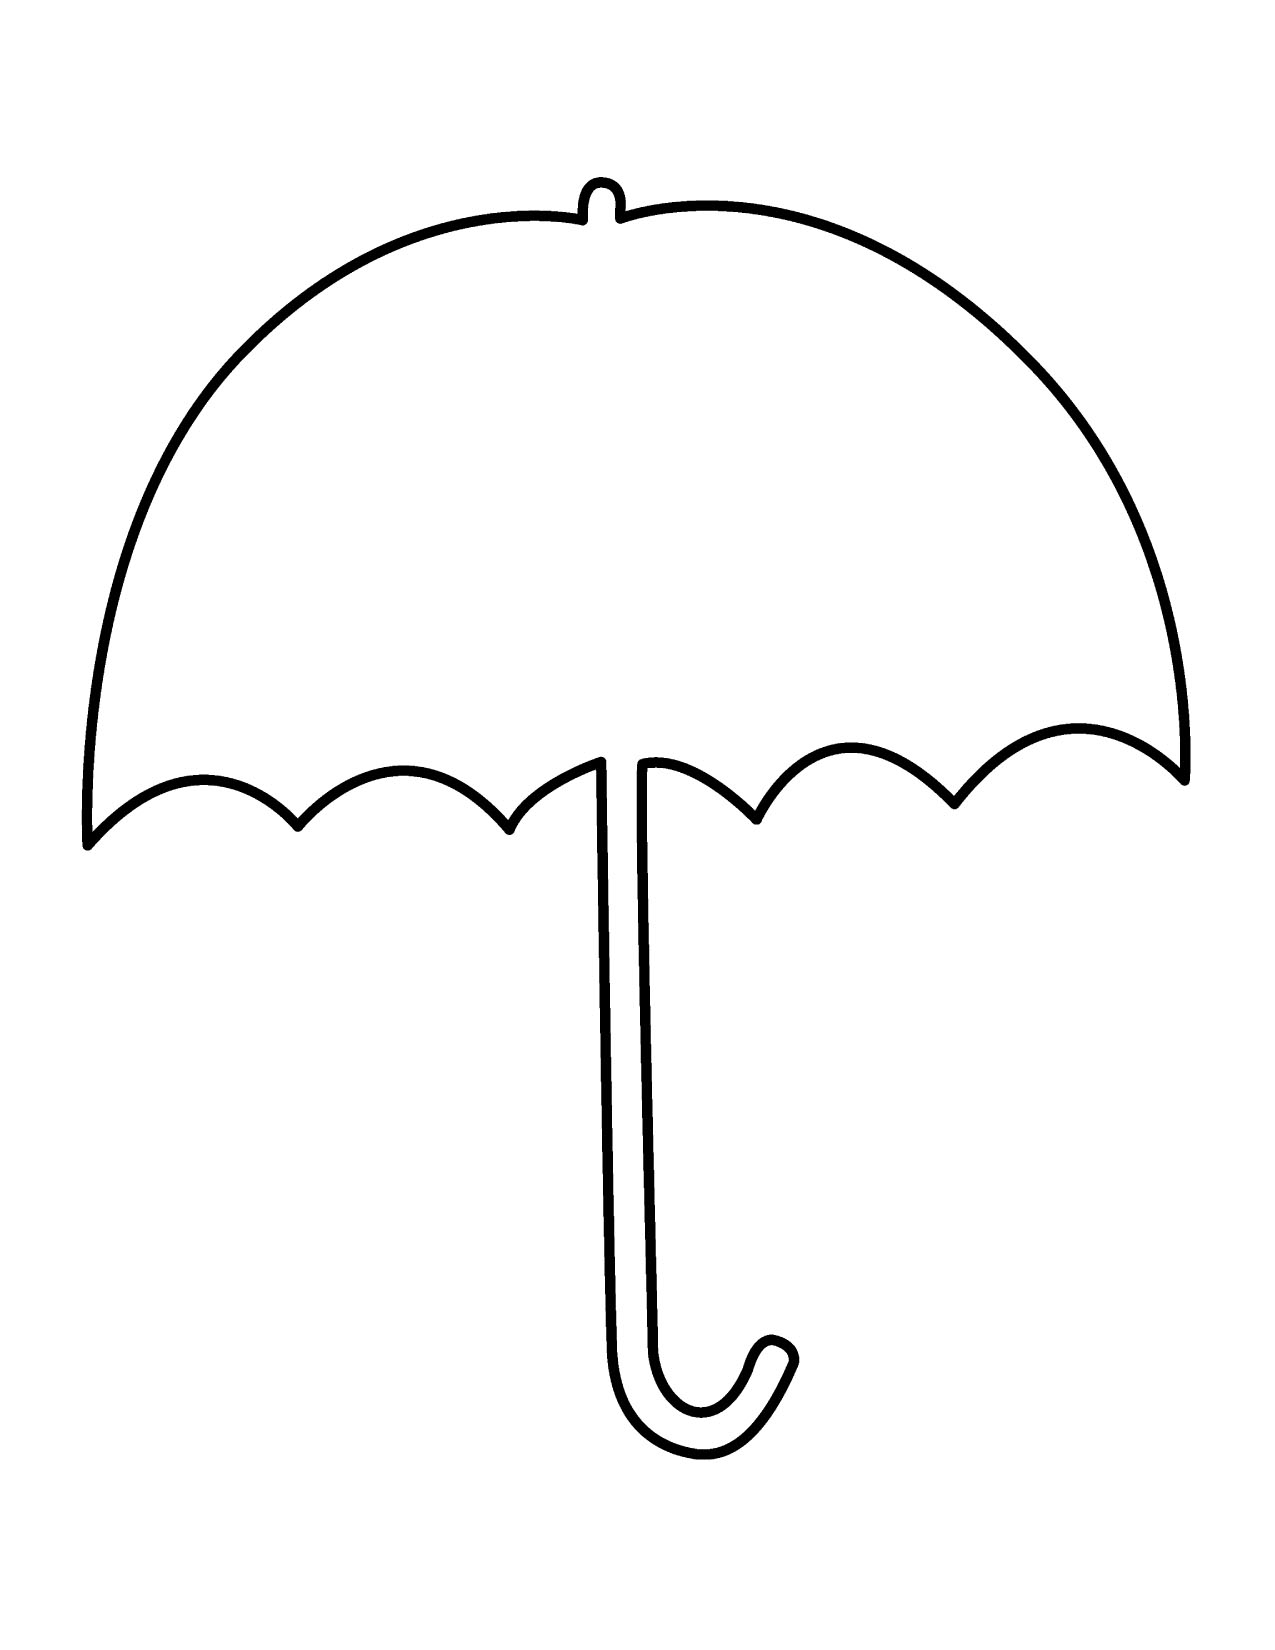 April umbrella. Clipart panda free images